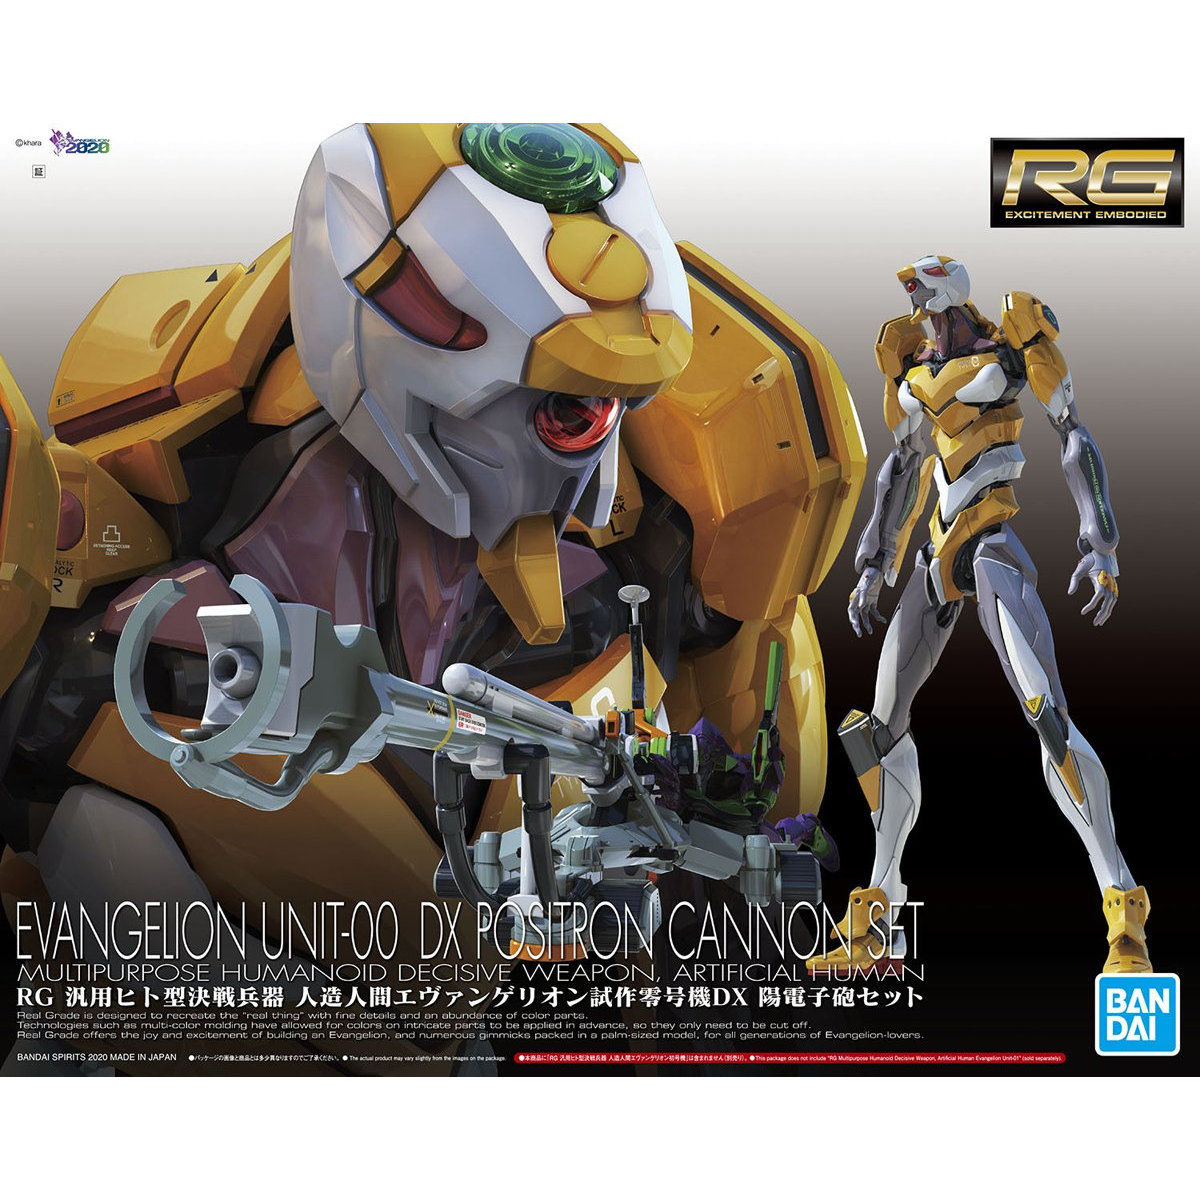 Gundam.my: BANDAI RG Artificial Human Evangelion Proto Type-00 + wth Positron Cannon Set landed Today